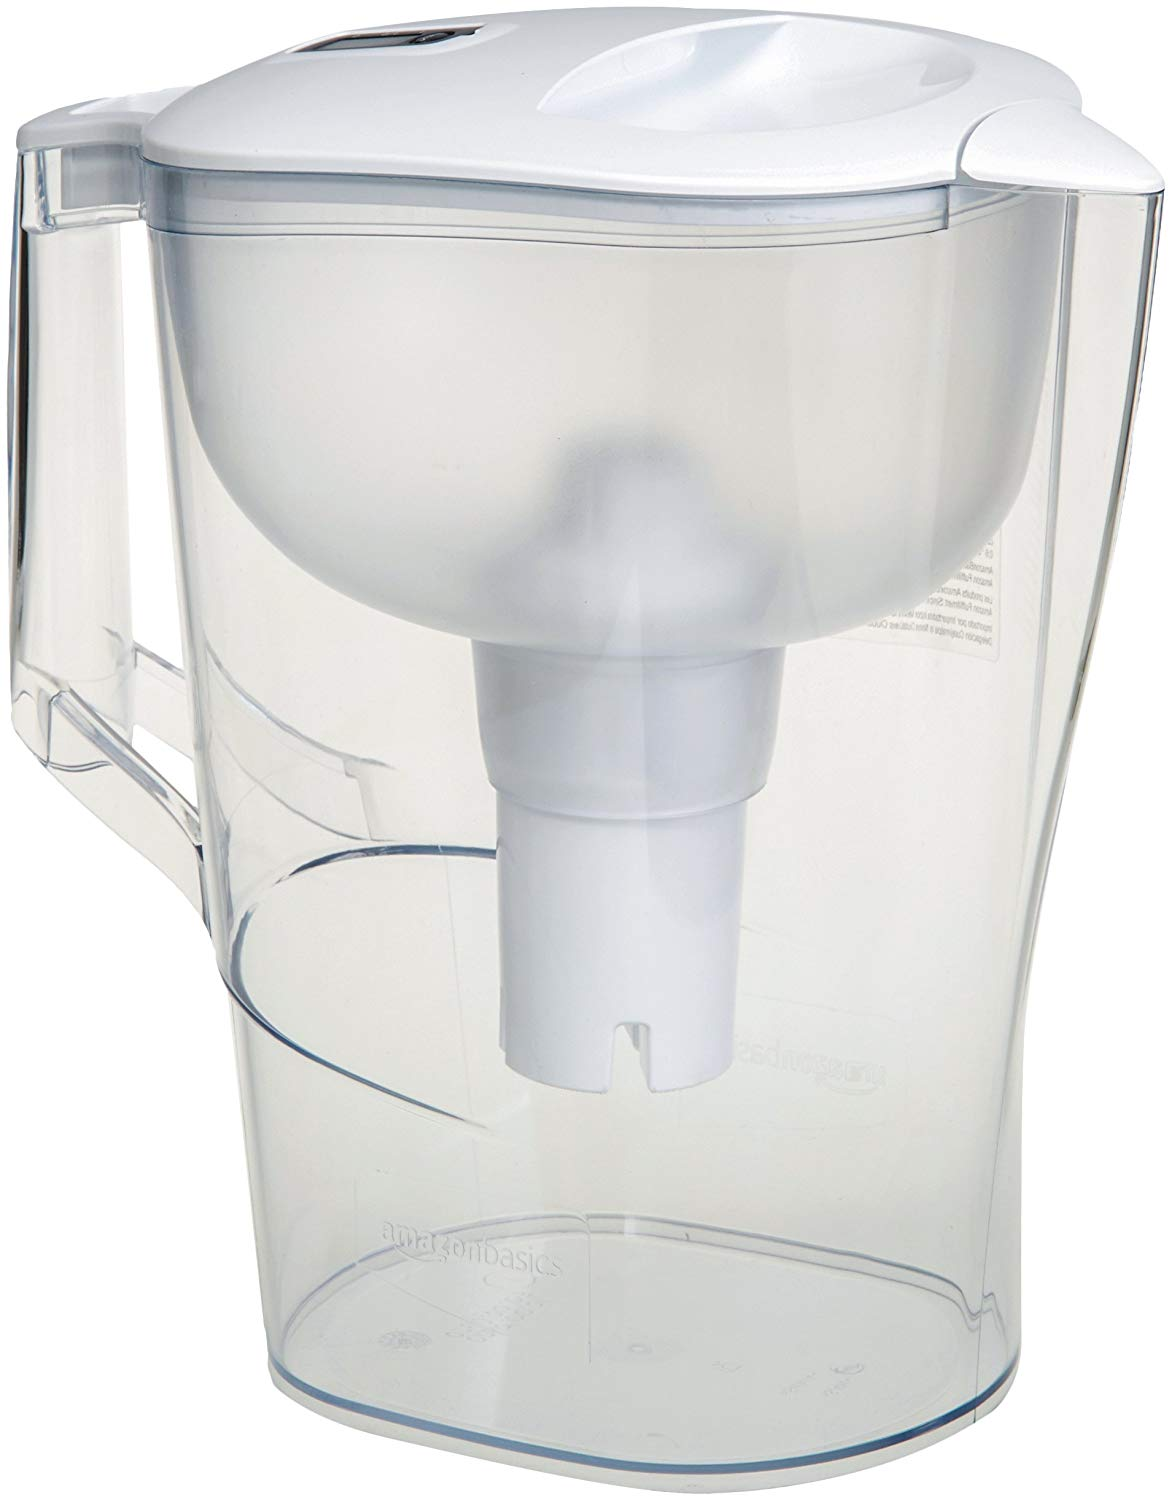 AmazonBasics zero water filter